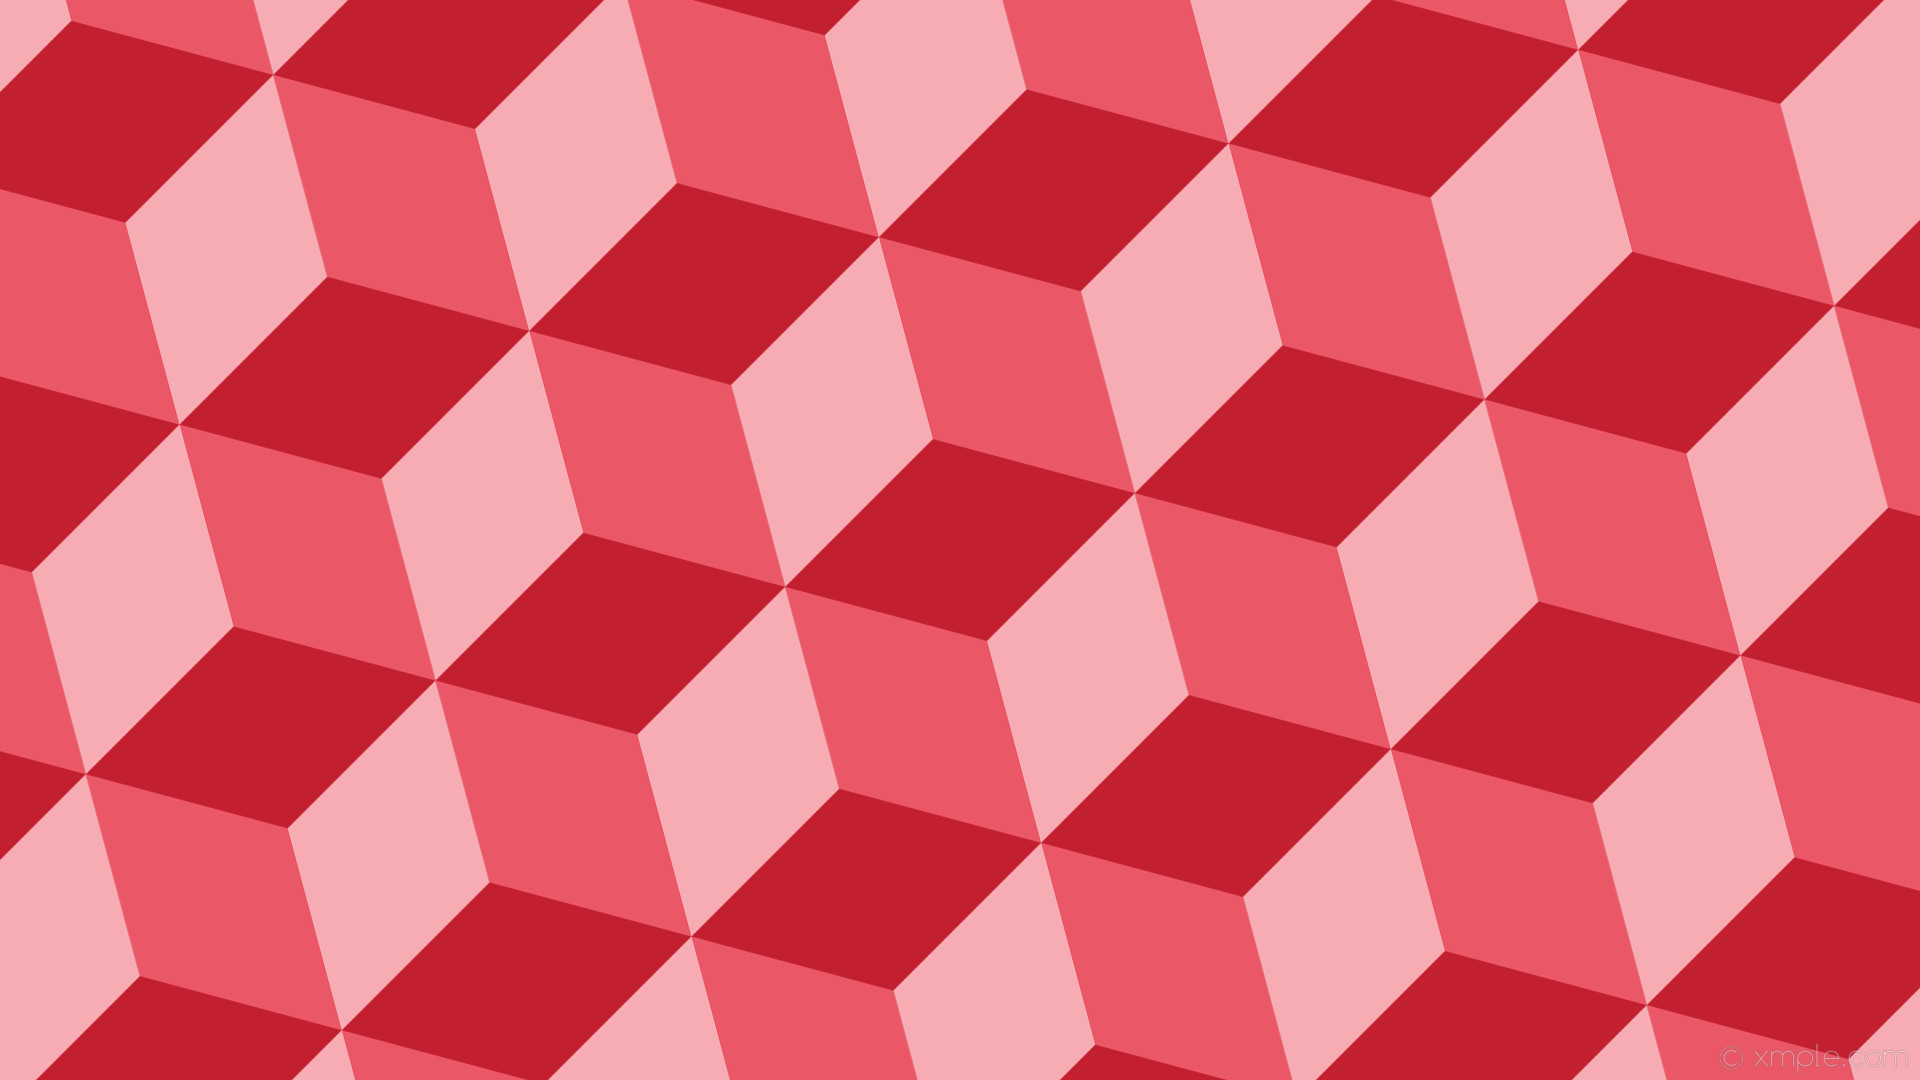 1920x1080 wallpaper red 3d cubes light red #c21f30 #ea5767 #f7abb3 195° 209px